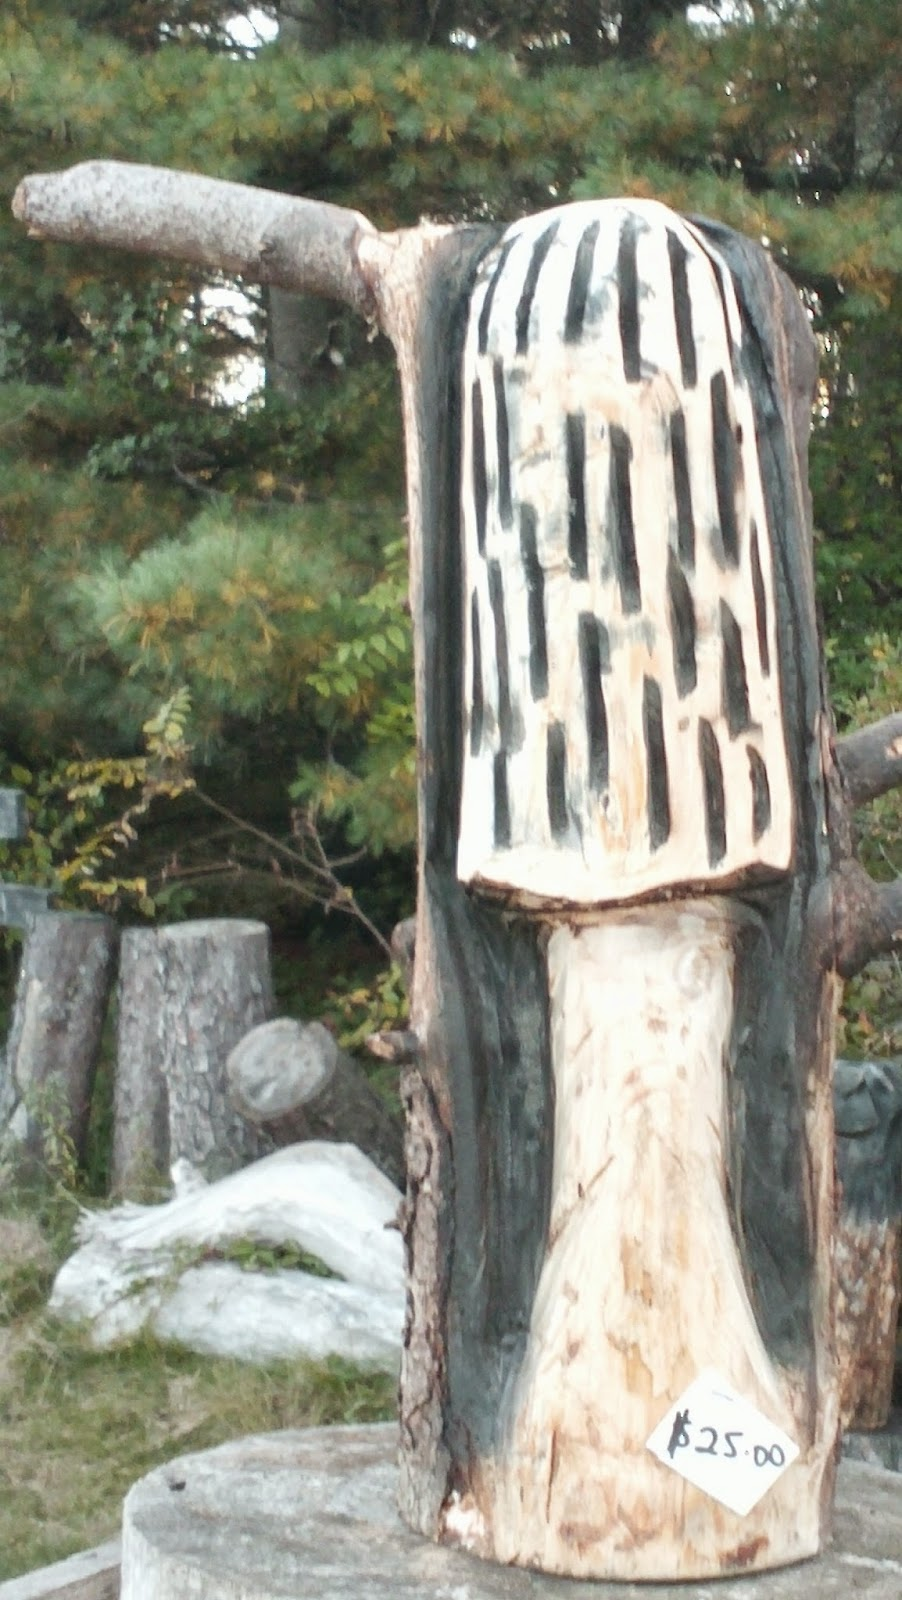 Ritlways chainsaw carvings